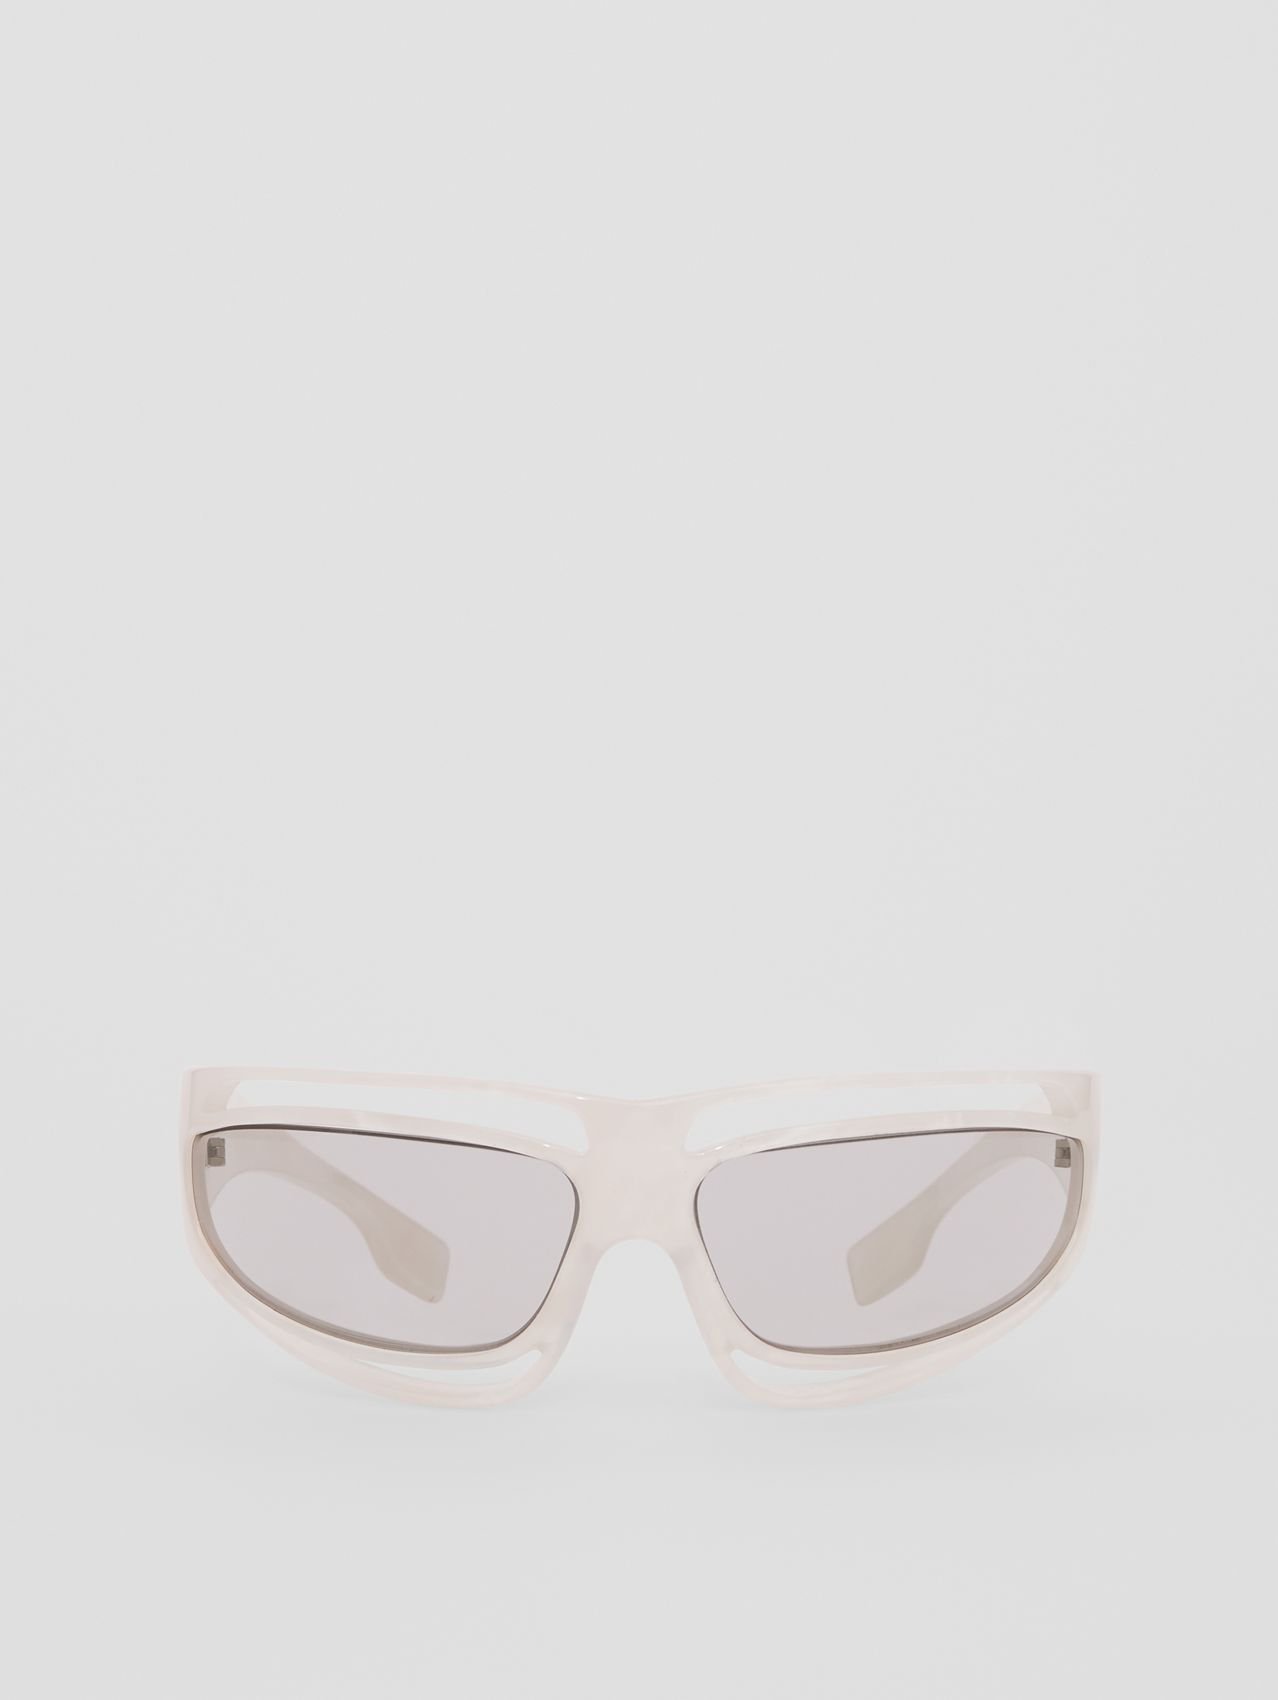 Eliot Shield Sunglasses in Pearl